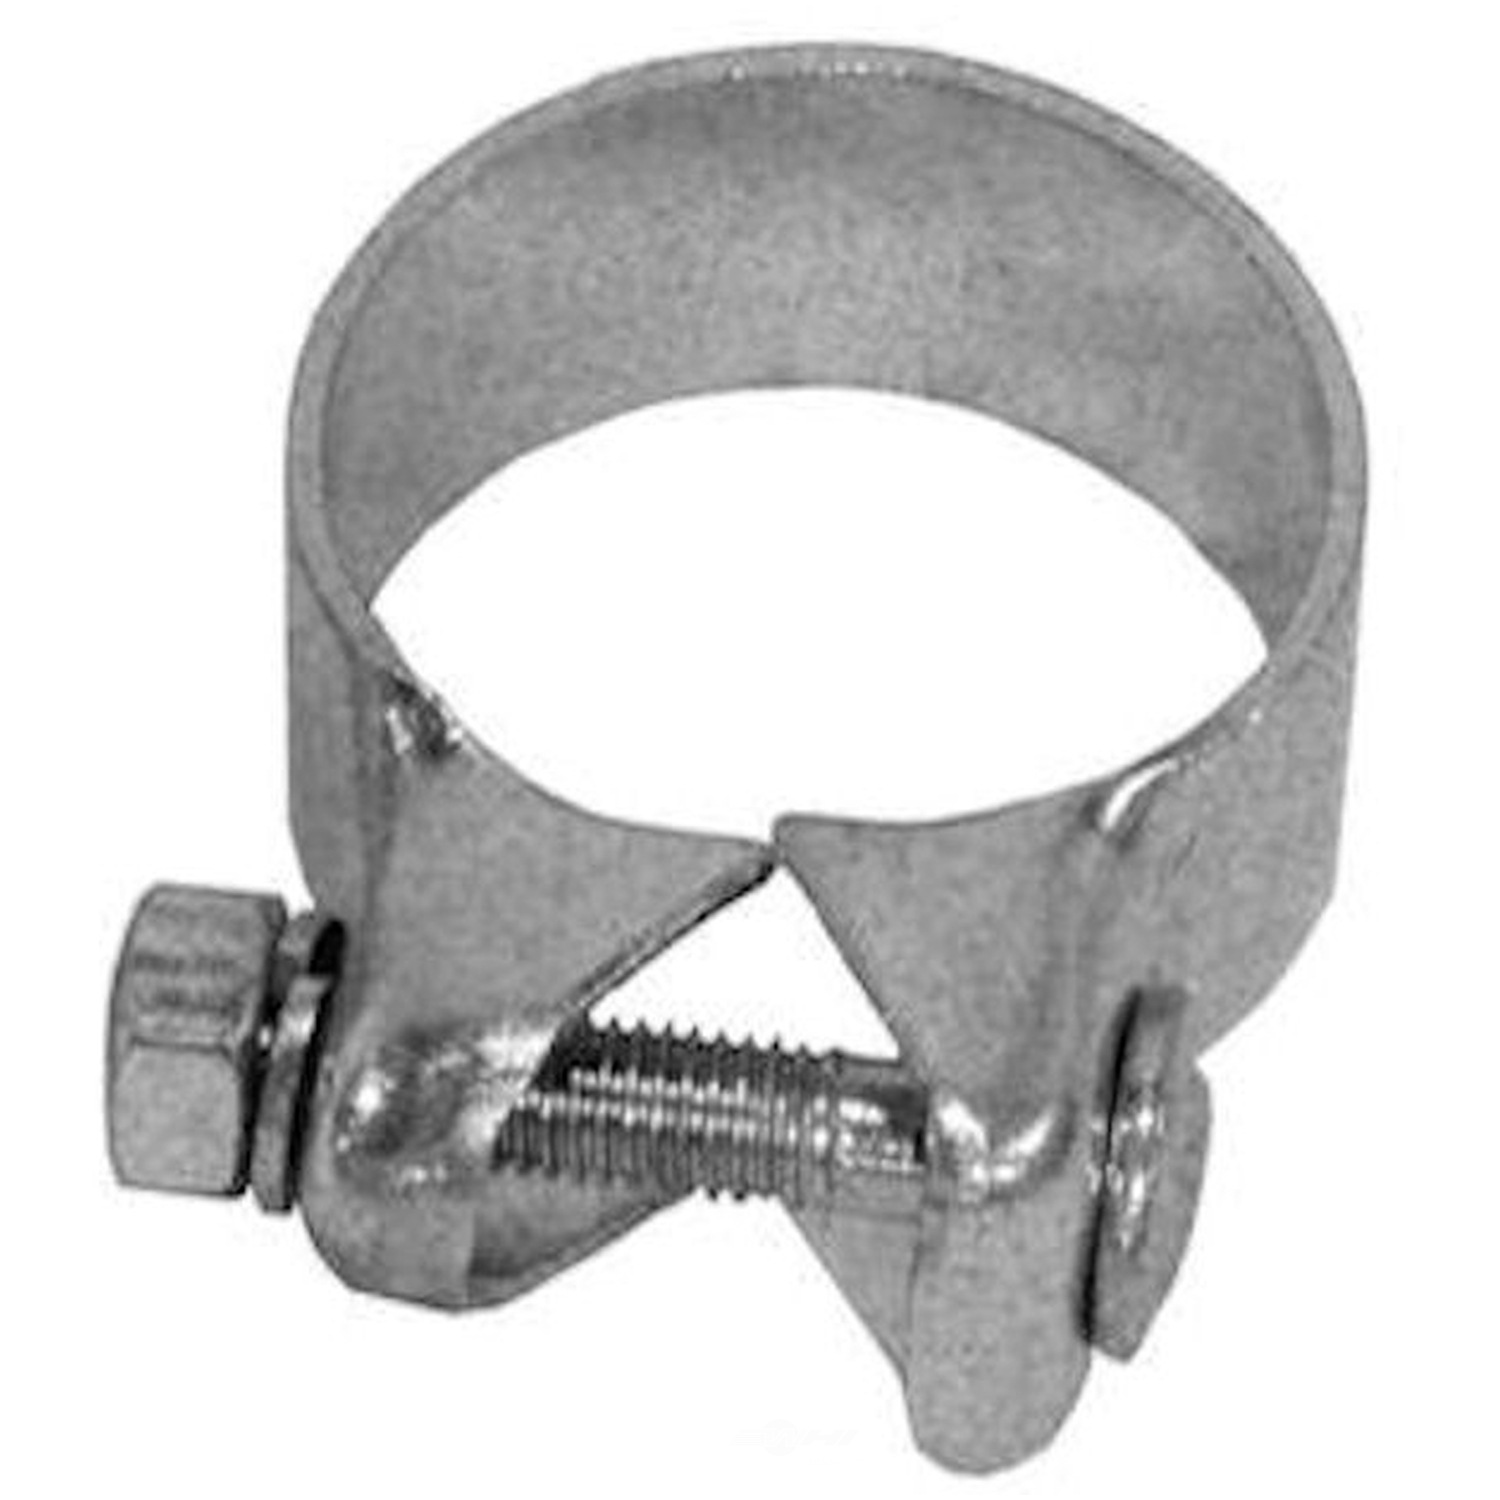 BOSAL 49 STATE CONVERTERS - Exhaust Clamp - BSF 250-354